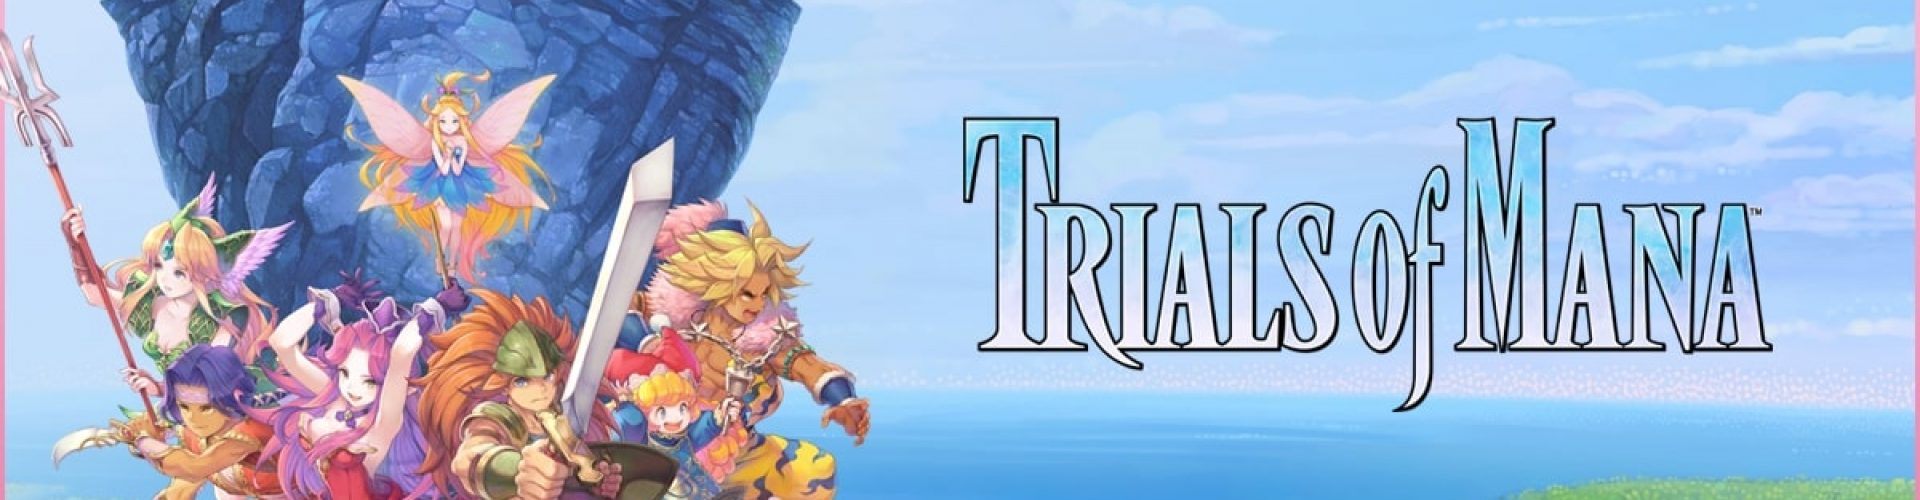 reviewfa_Trials_of_Mana (8)